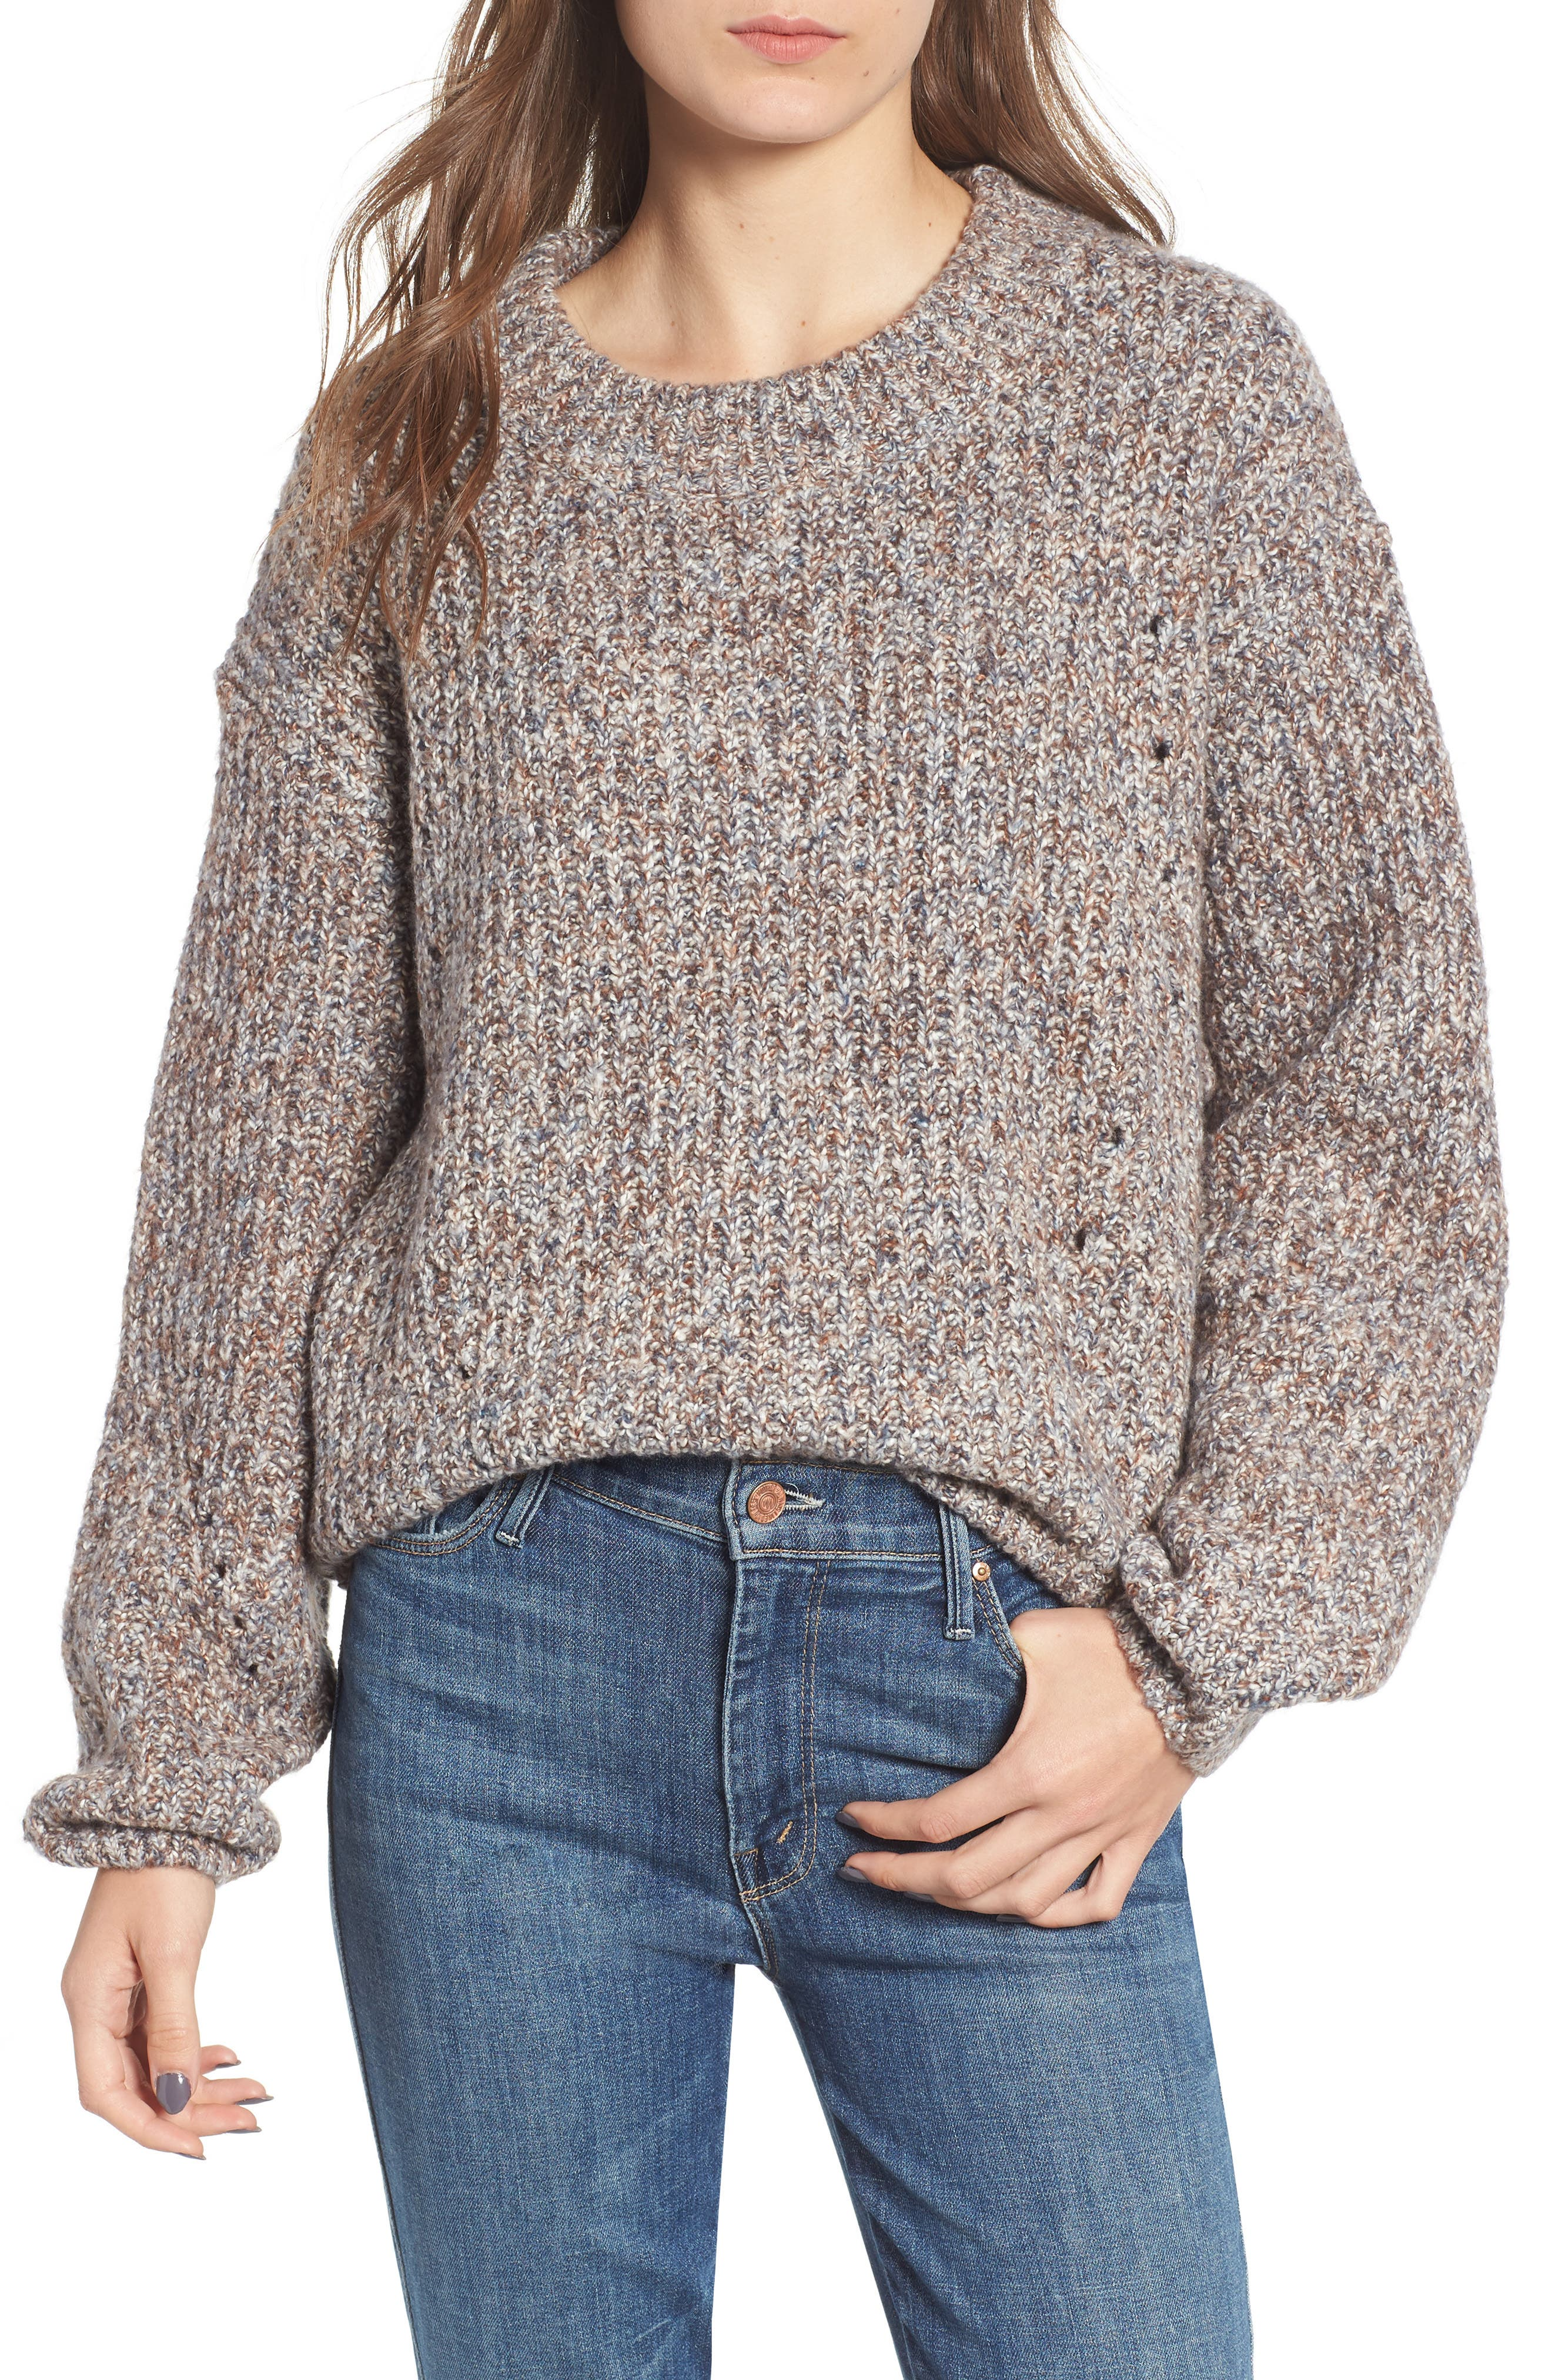 Heritage Stitch Sweater,                             Main thumbnail 1, color,                             021